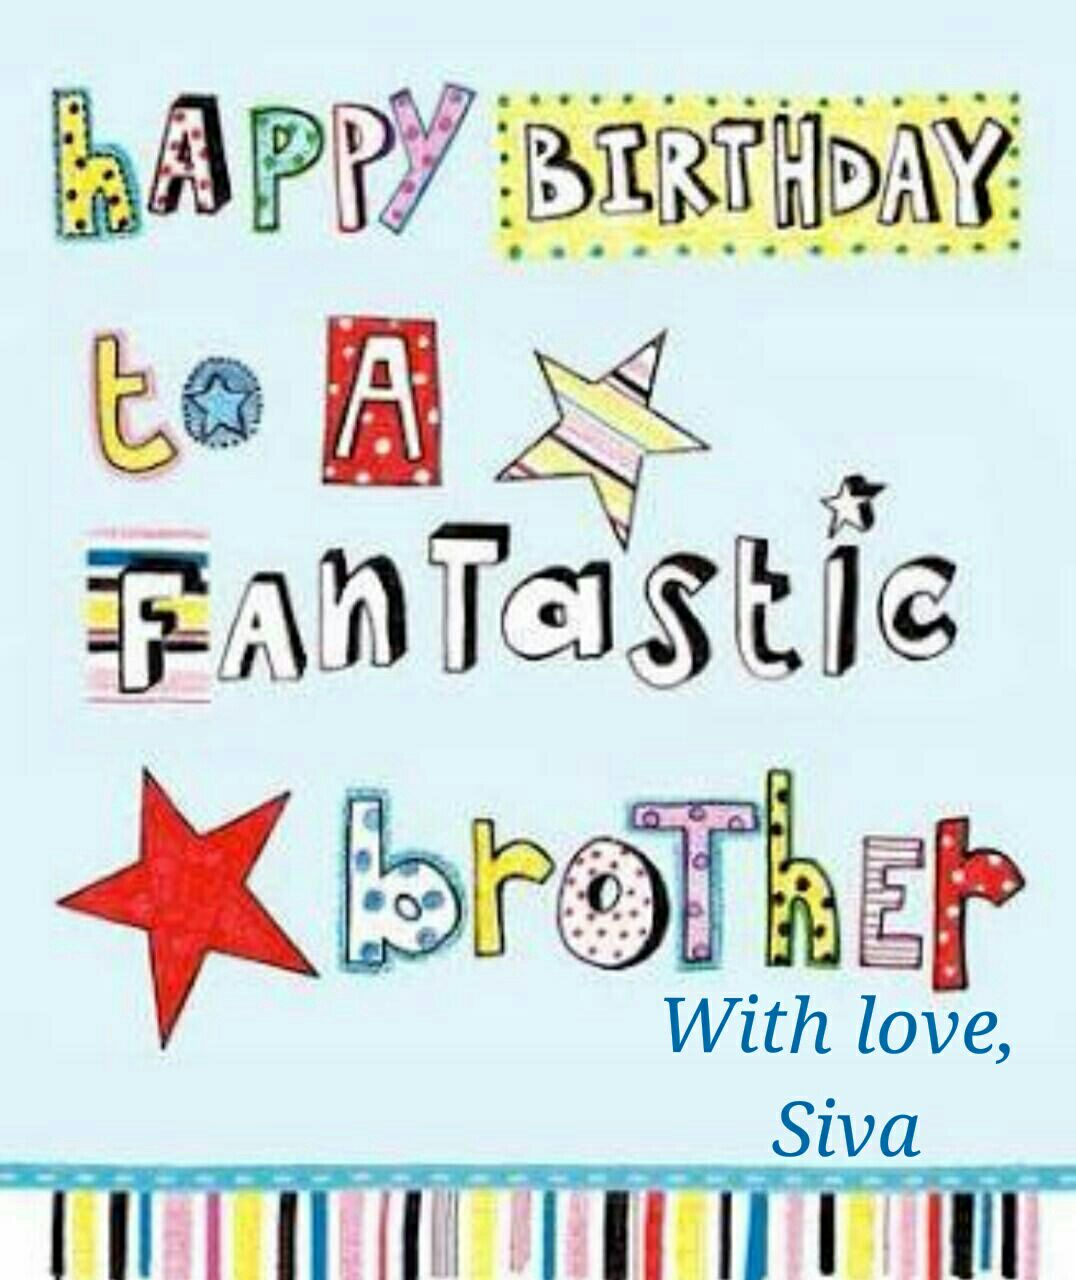 Free happy birthday brother clipart 2 » Clipart Station.